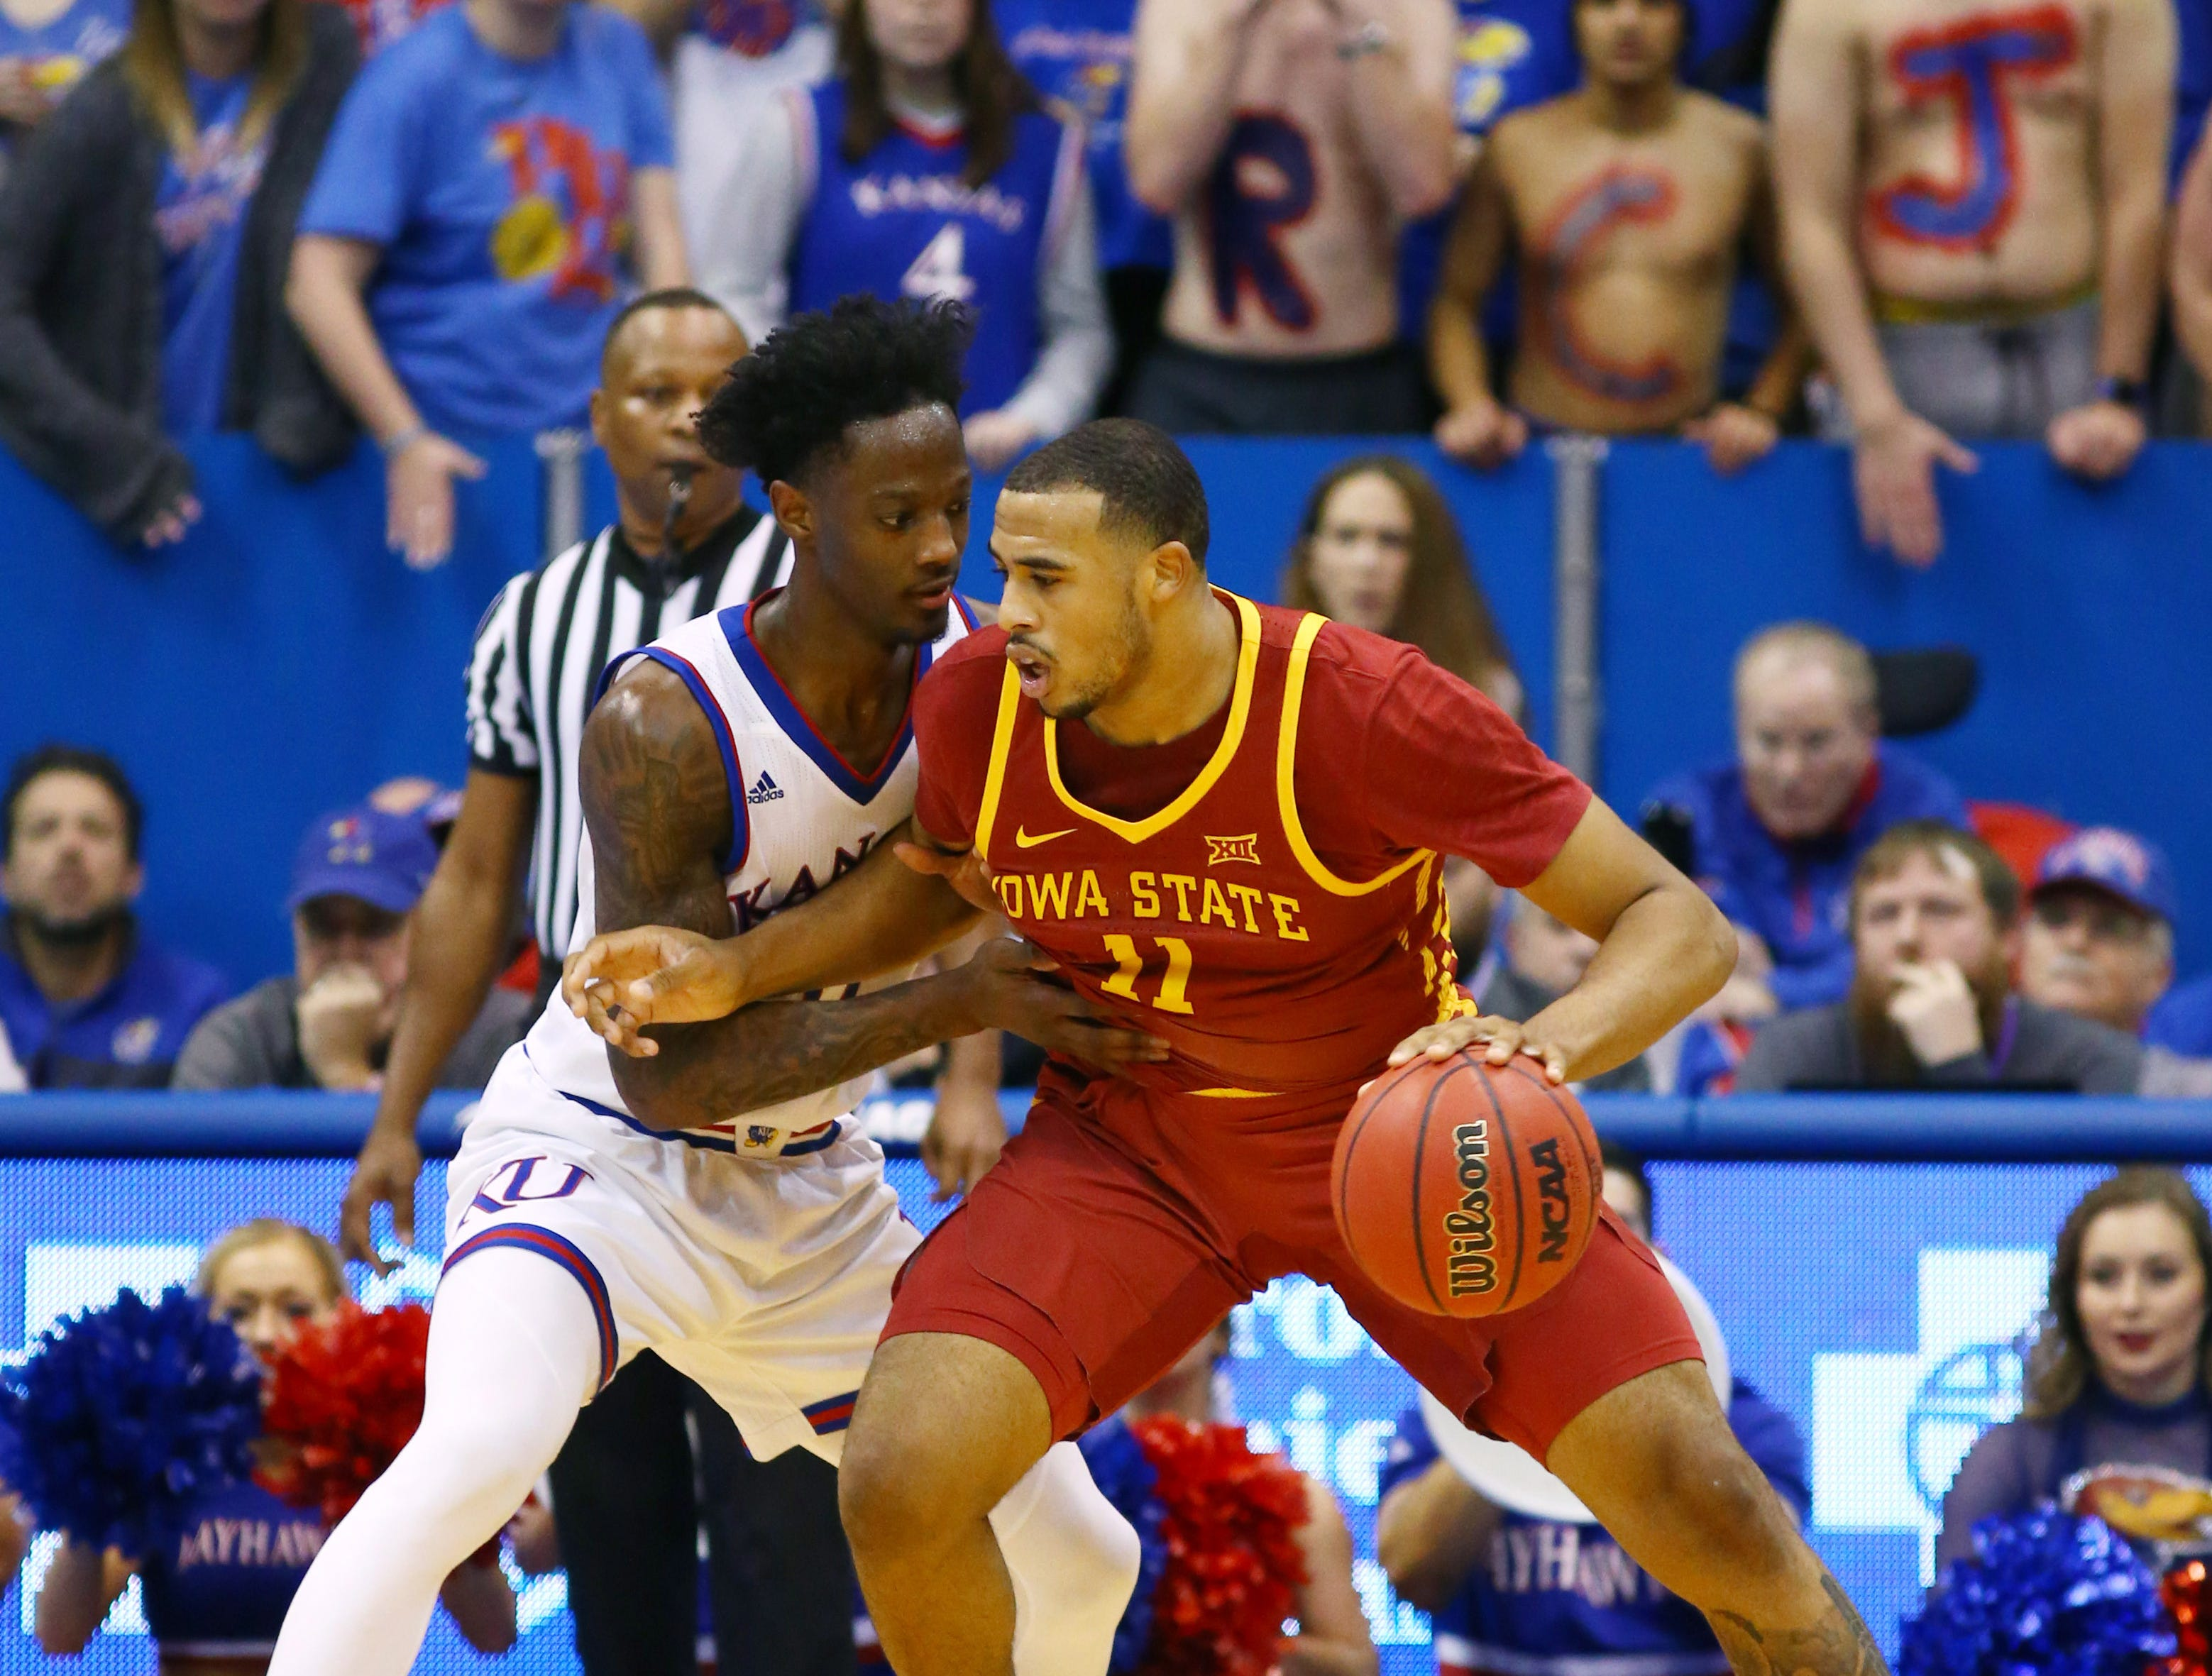 Iowa State Cyclones guard Talen Horton-Tucker (11) dribbles the ball against Kansas Jayhawks guard Marcus Garrett (0) in the second half at Allen Fieldhouse.